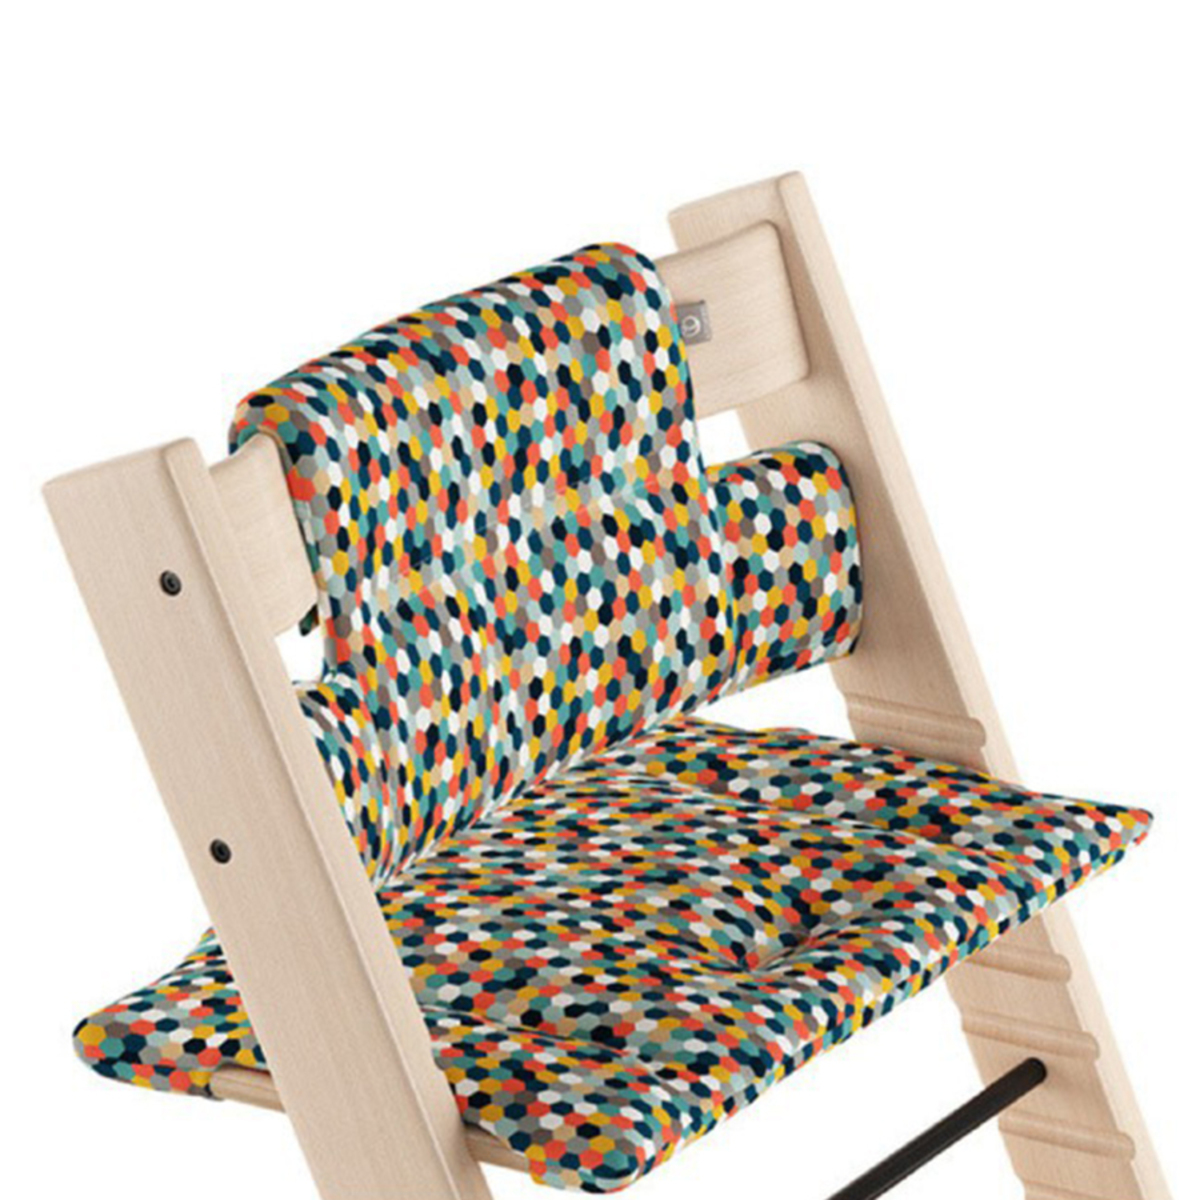 Chaise haute Coussin Classic Tripp Trapp - Nid d'Abeille Lumineux Coussin Classic Tripp Trapp - Nid d'Abeille Lumineux